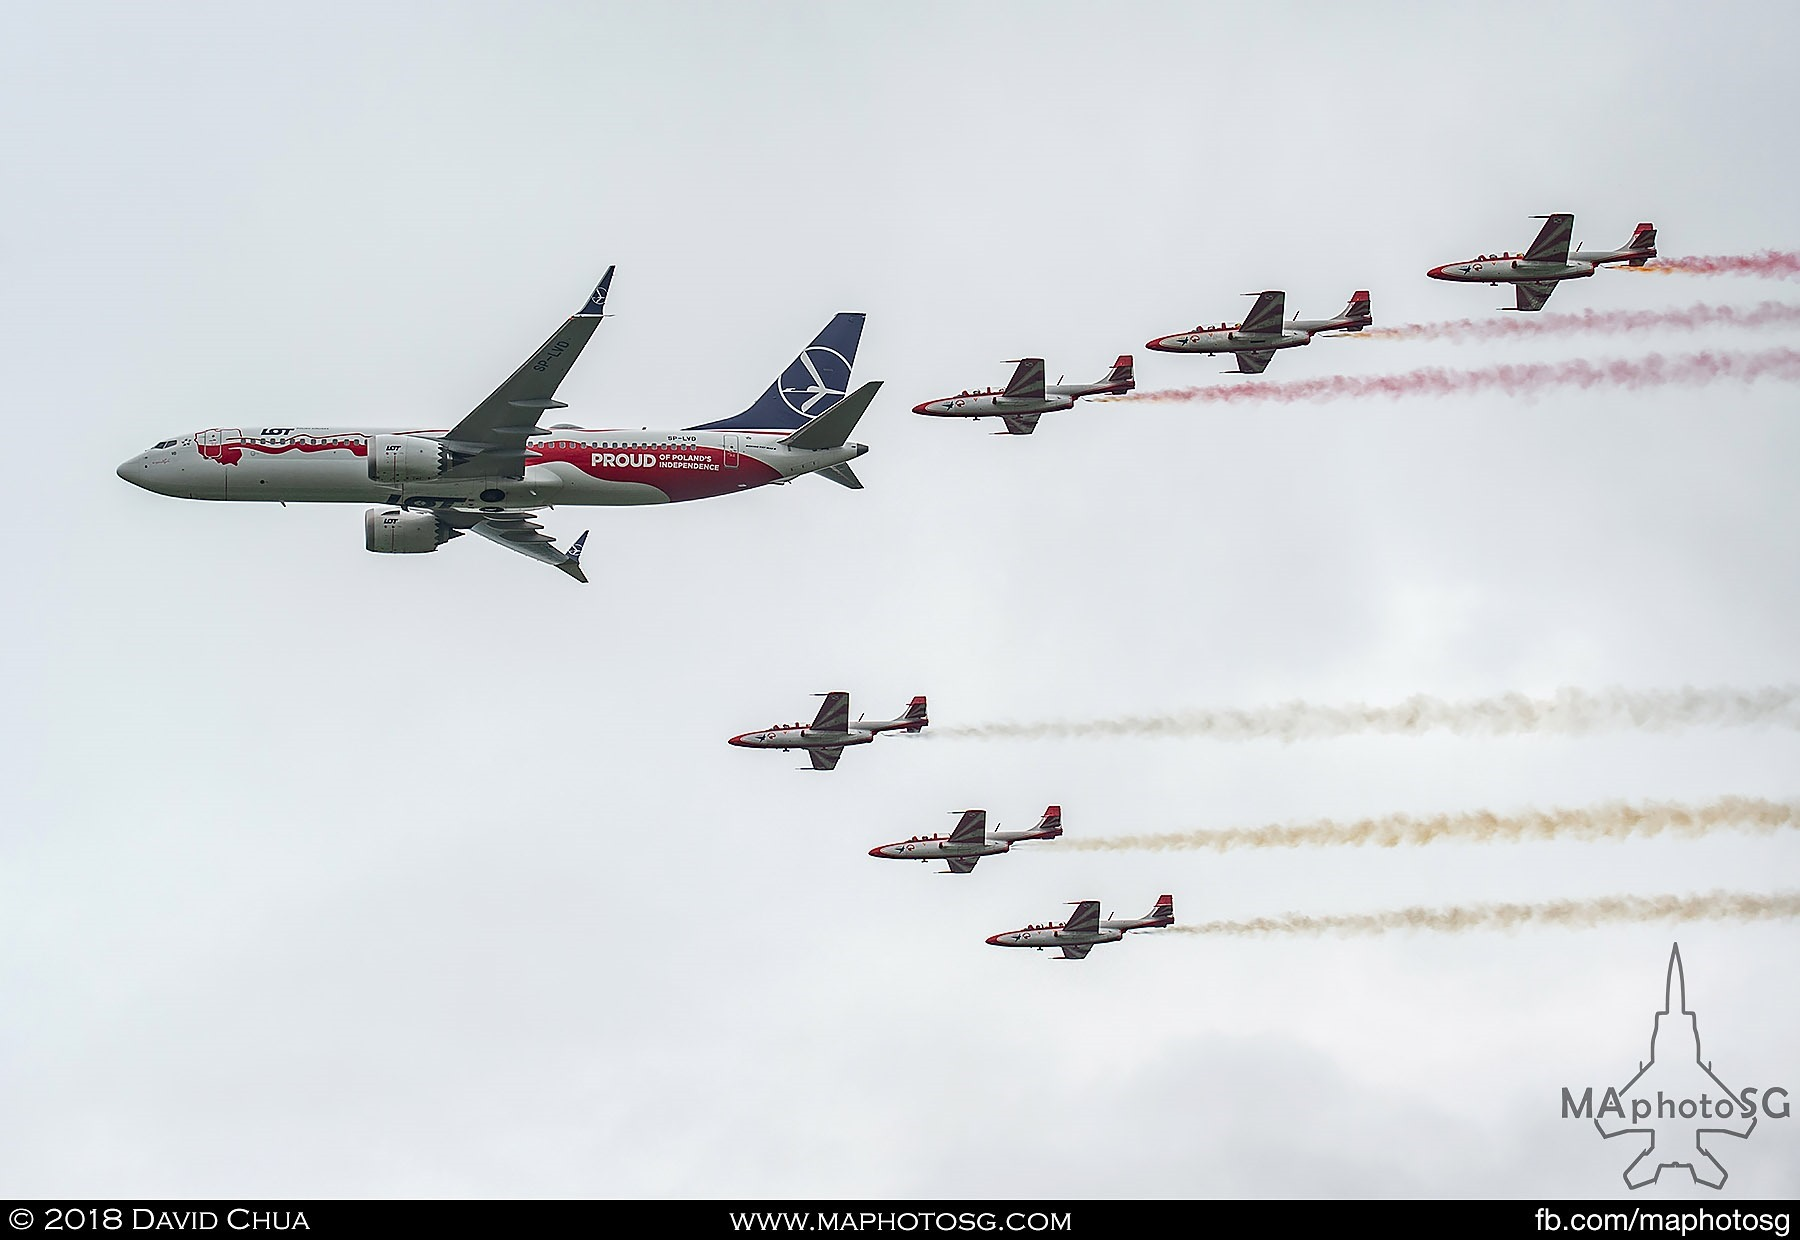 02. Flypast of LOT Polish Airlines Boeing 737 Max in special Proud of Poland's Independence livery escorted by 6 TS-11s of Team Iskry